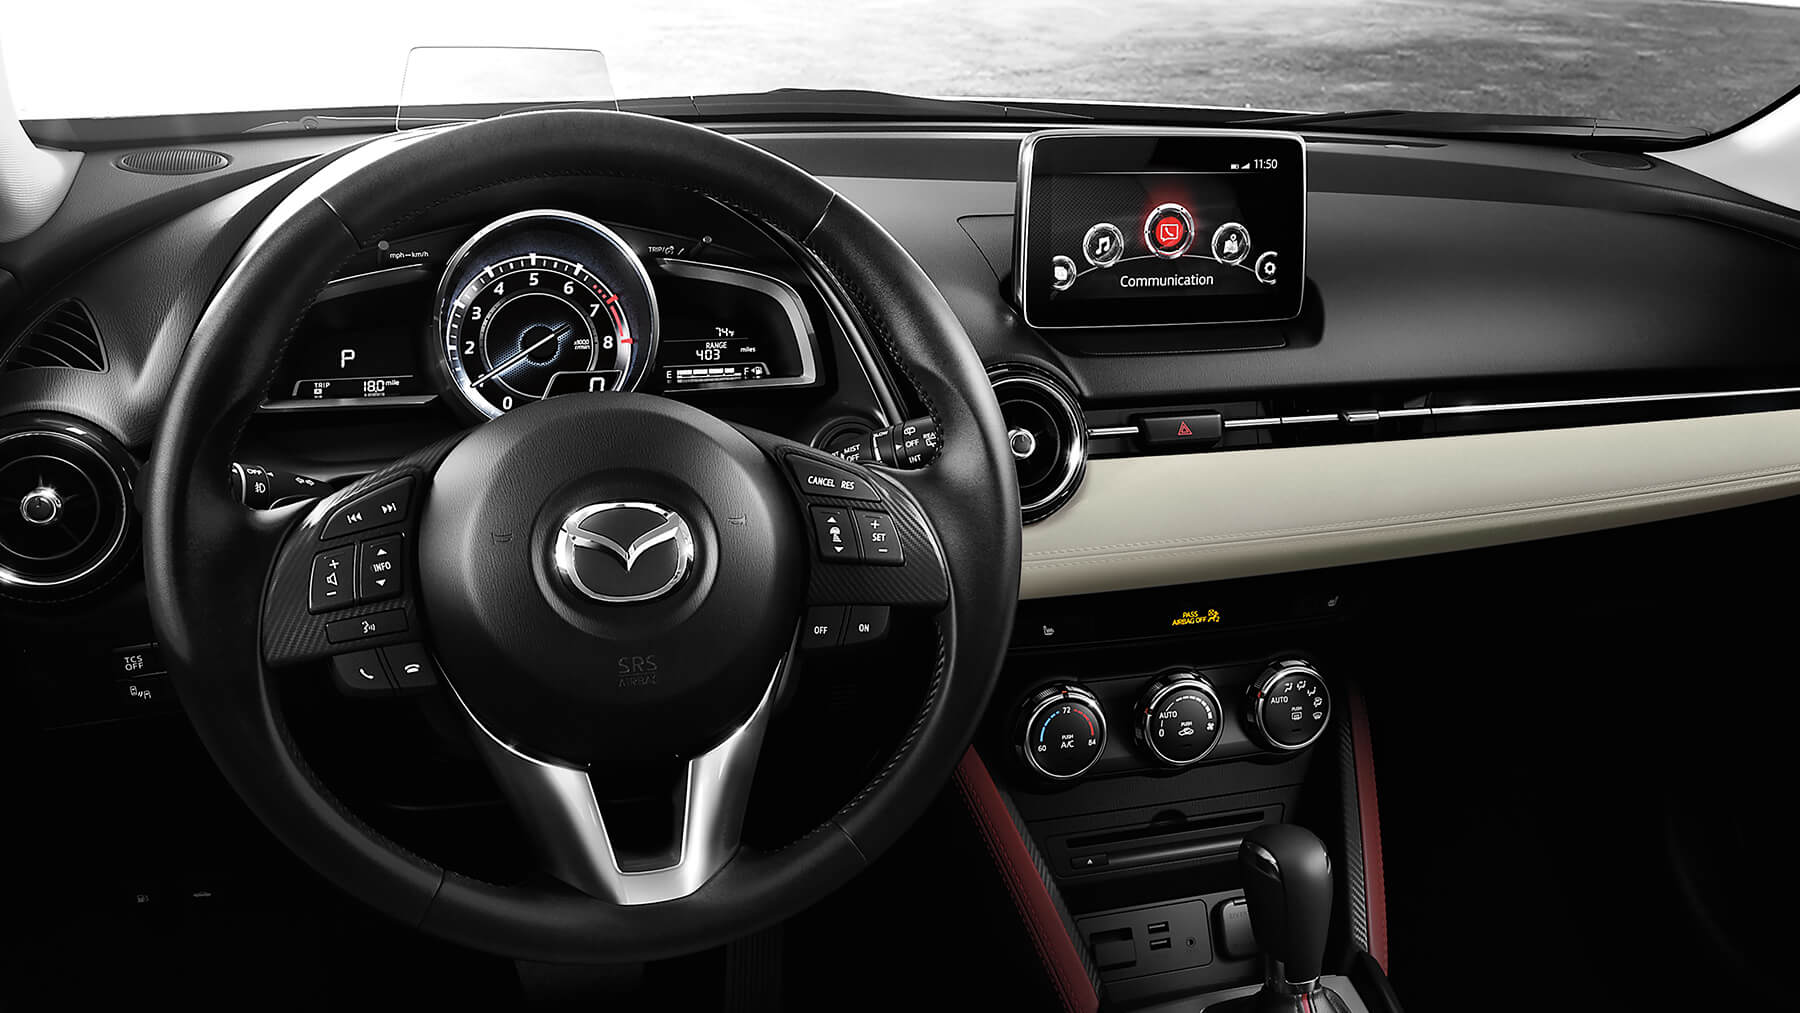 2018 mazda cx-3 leasing near augusta, ga - gerald jones mazda